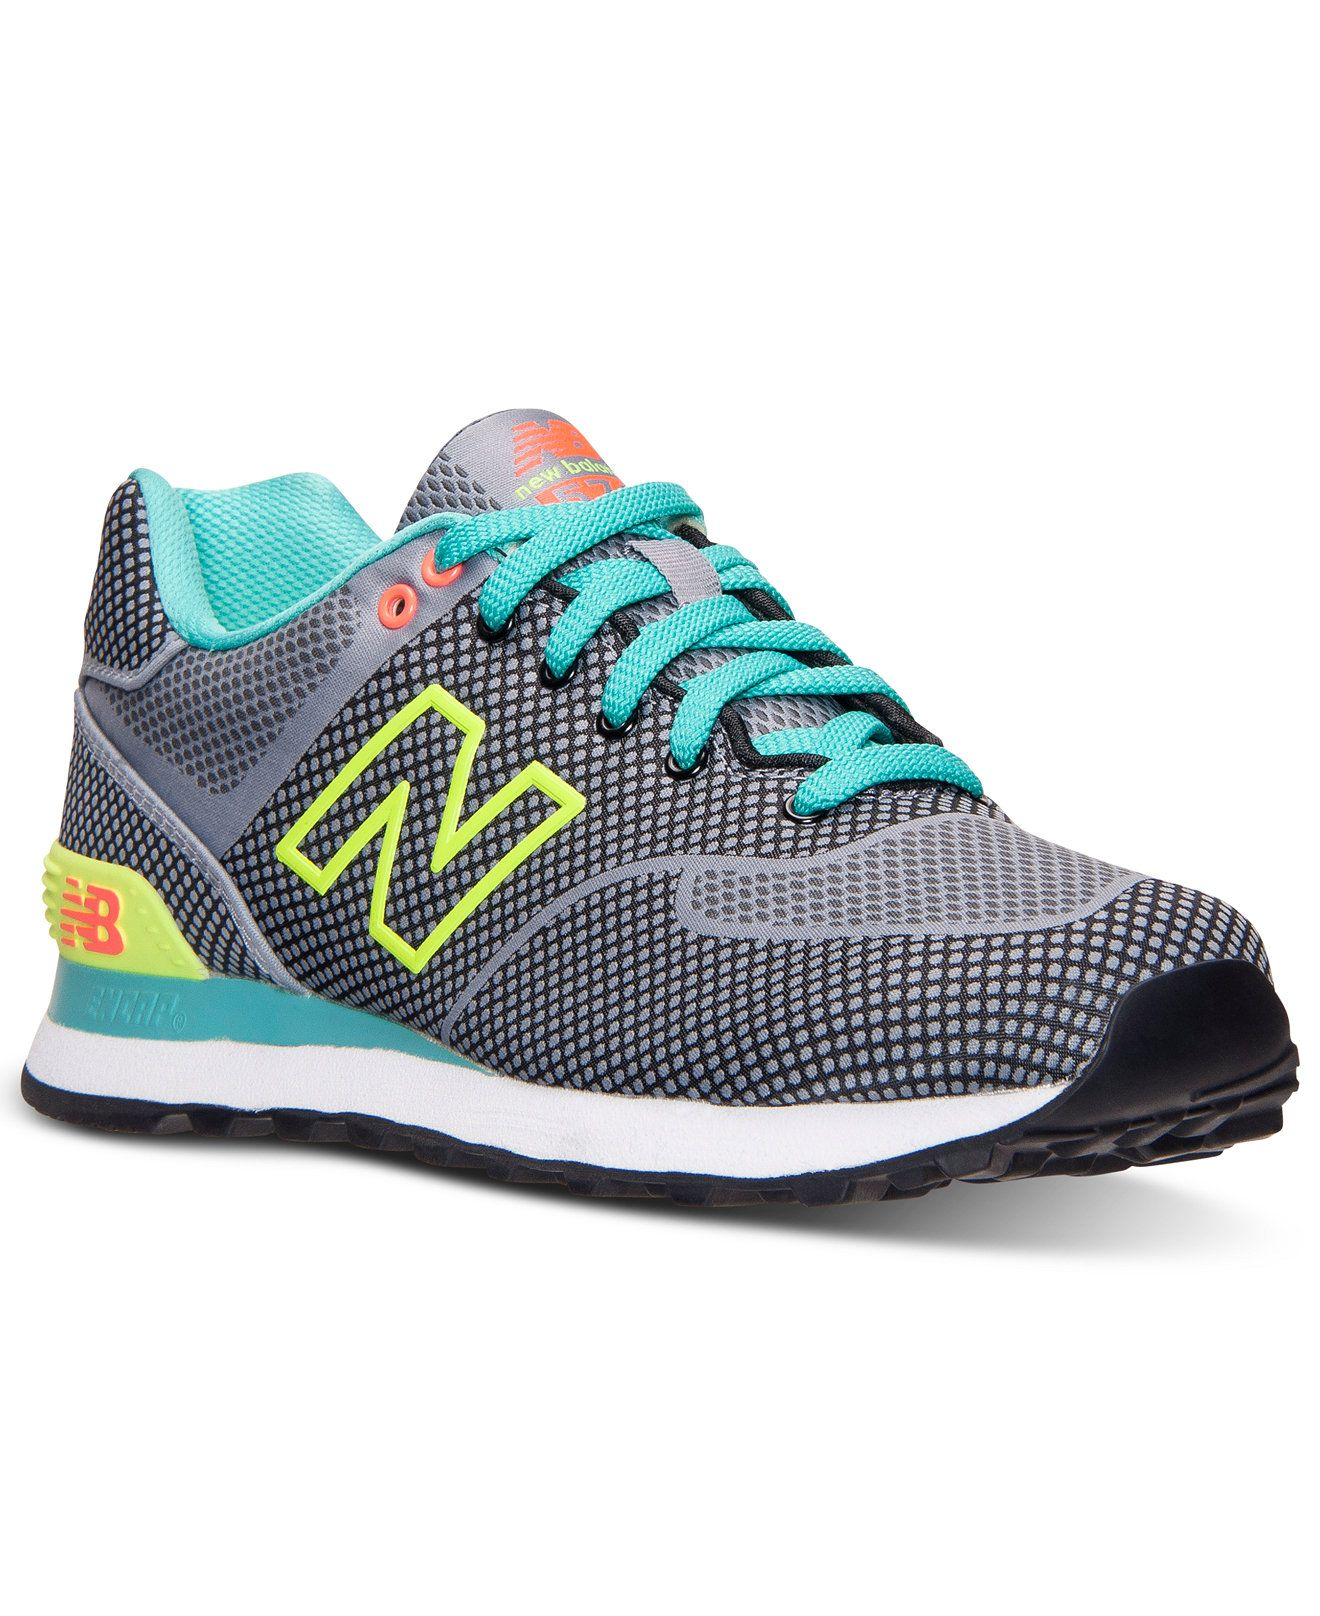 New Balance Womens 574 Casual Sneakers from Finish Line Finish Line Athletic Sneakers Shoes